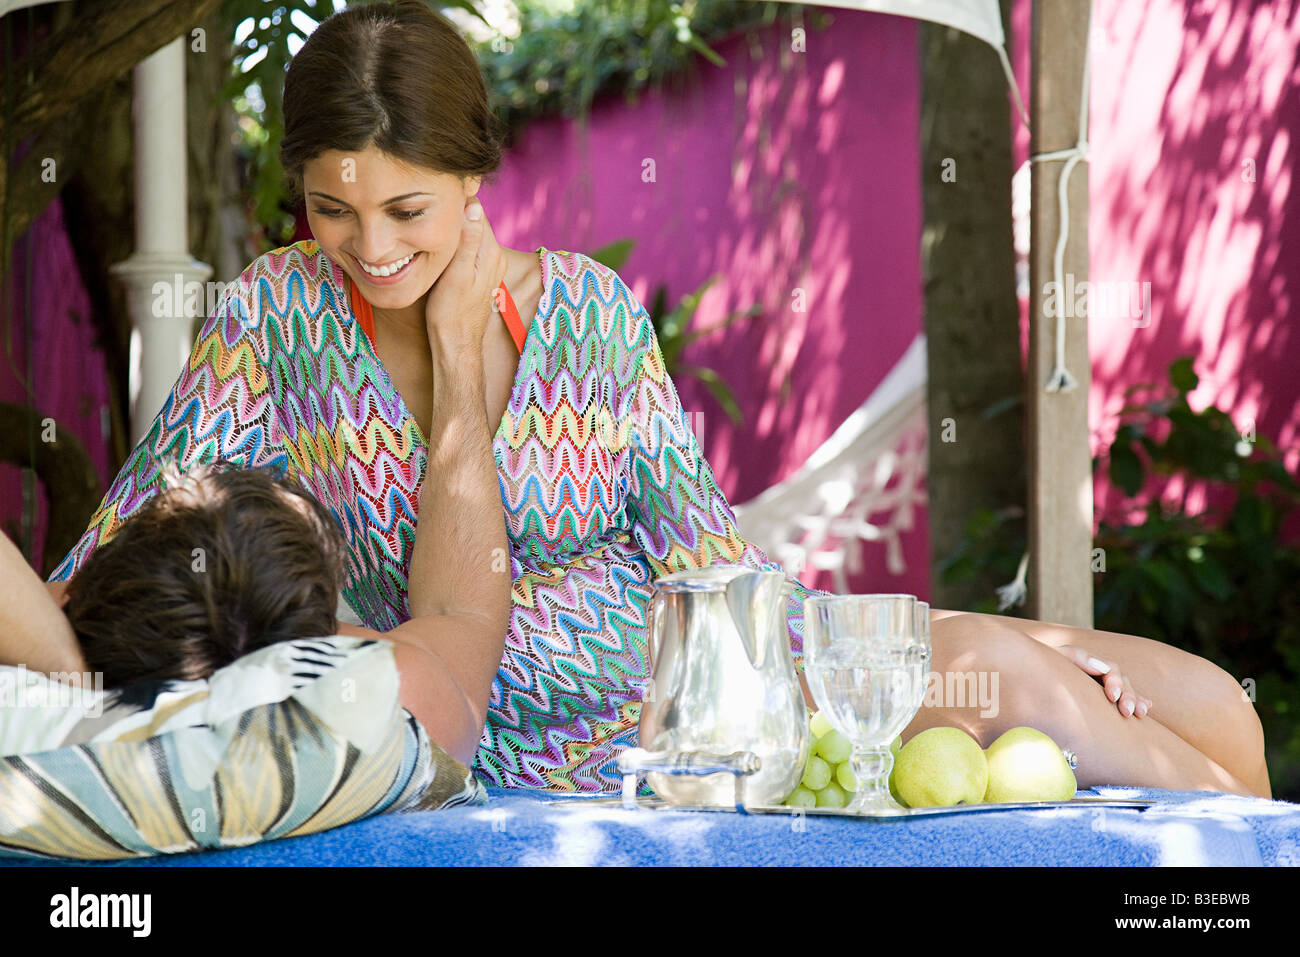 Intimate couple in the shade - Stock Image